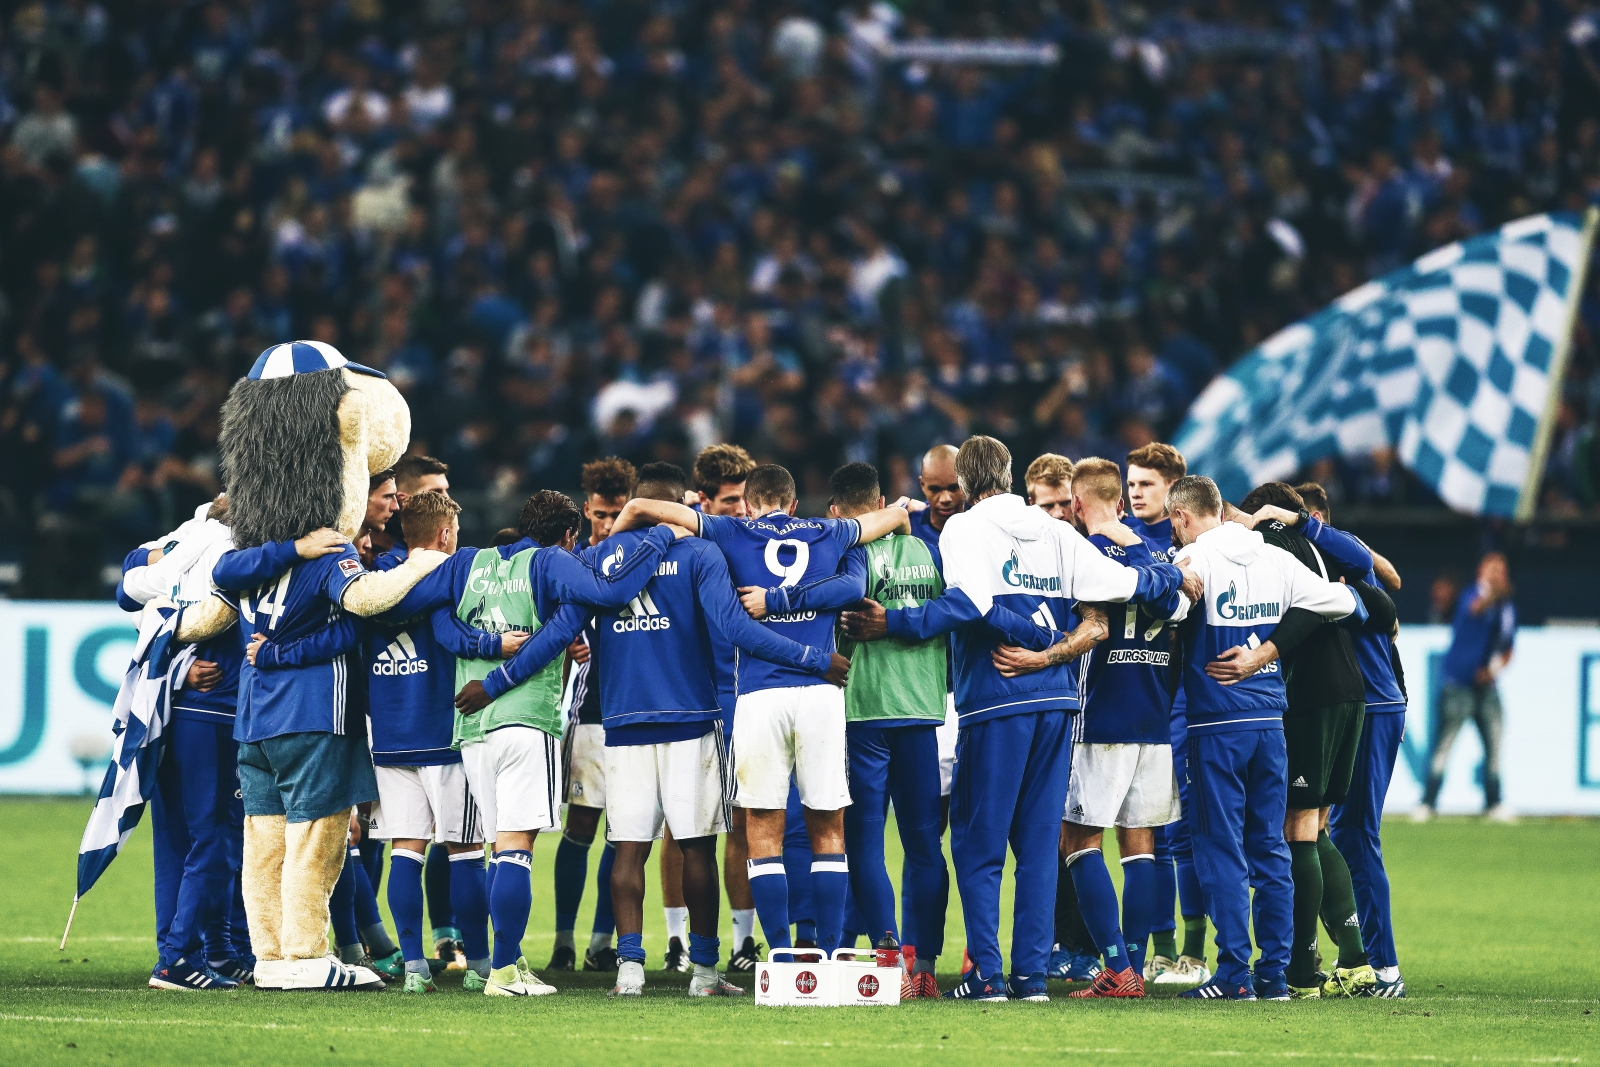 The Transfer Policy Stopping Schalke From Becoming A Major Power